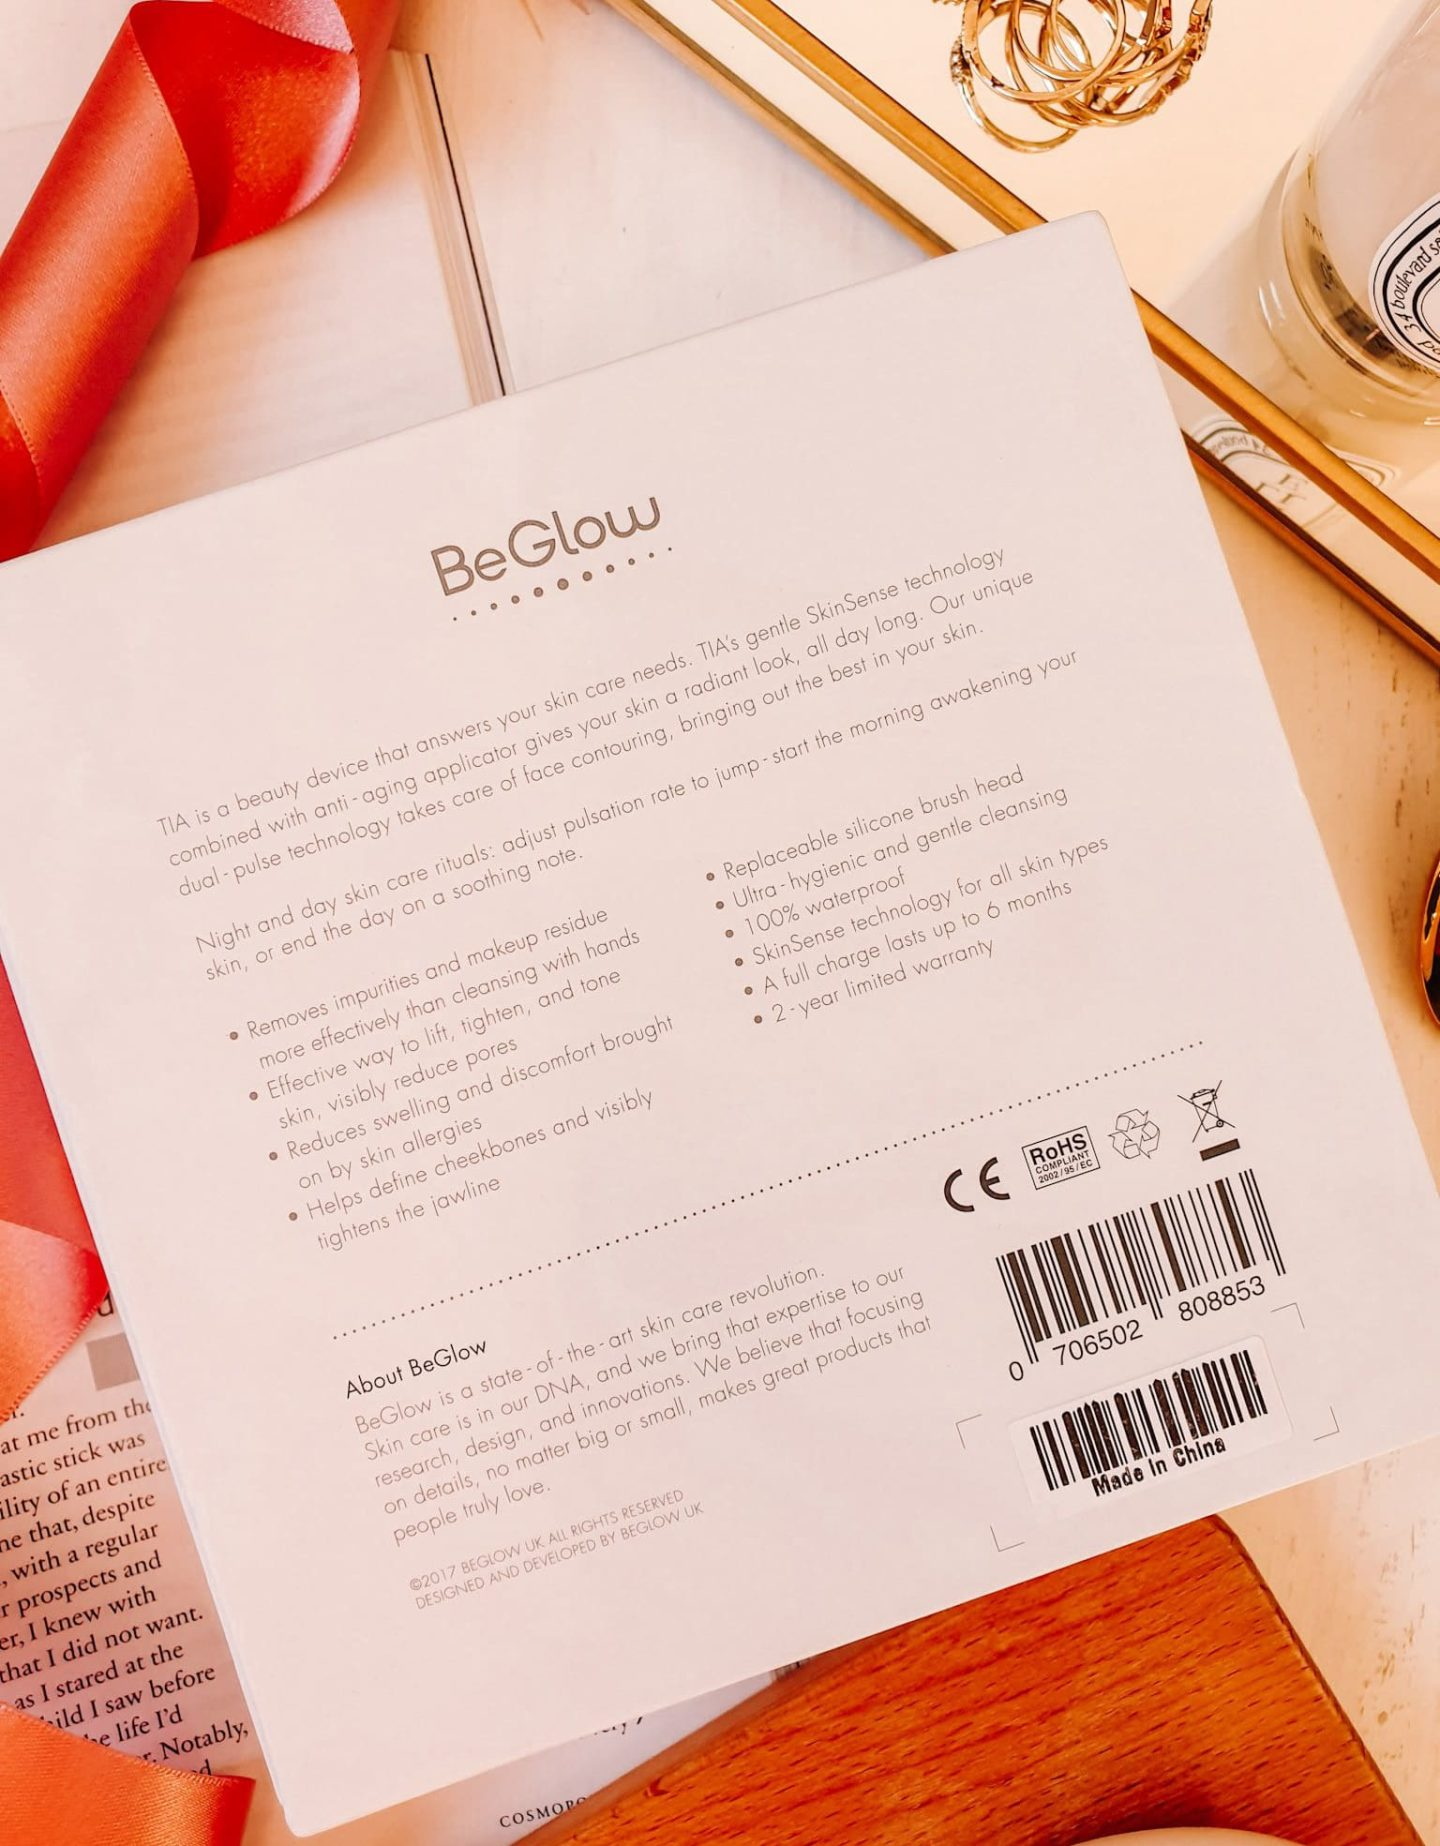 BeGlow TIA All-In-One Sonic Skin Care System Packaging